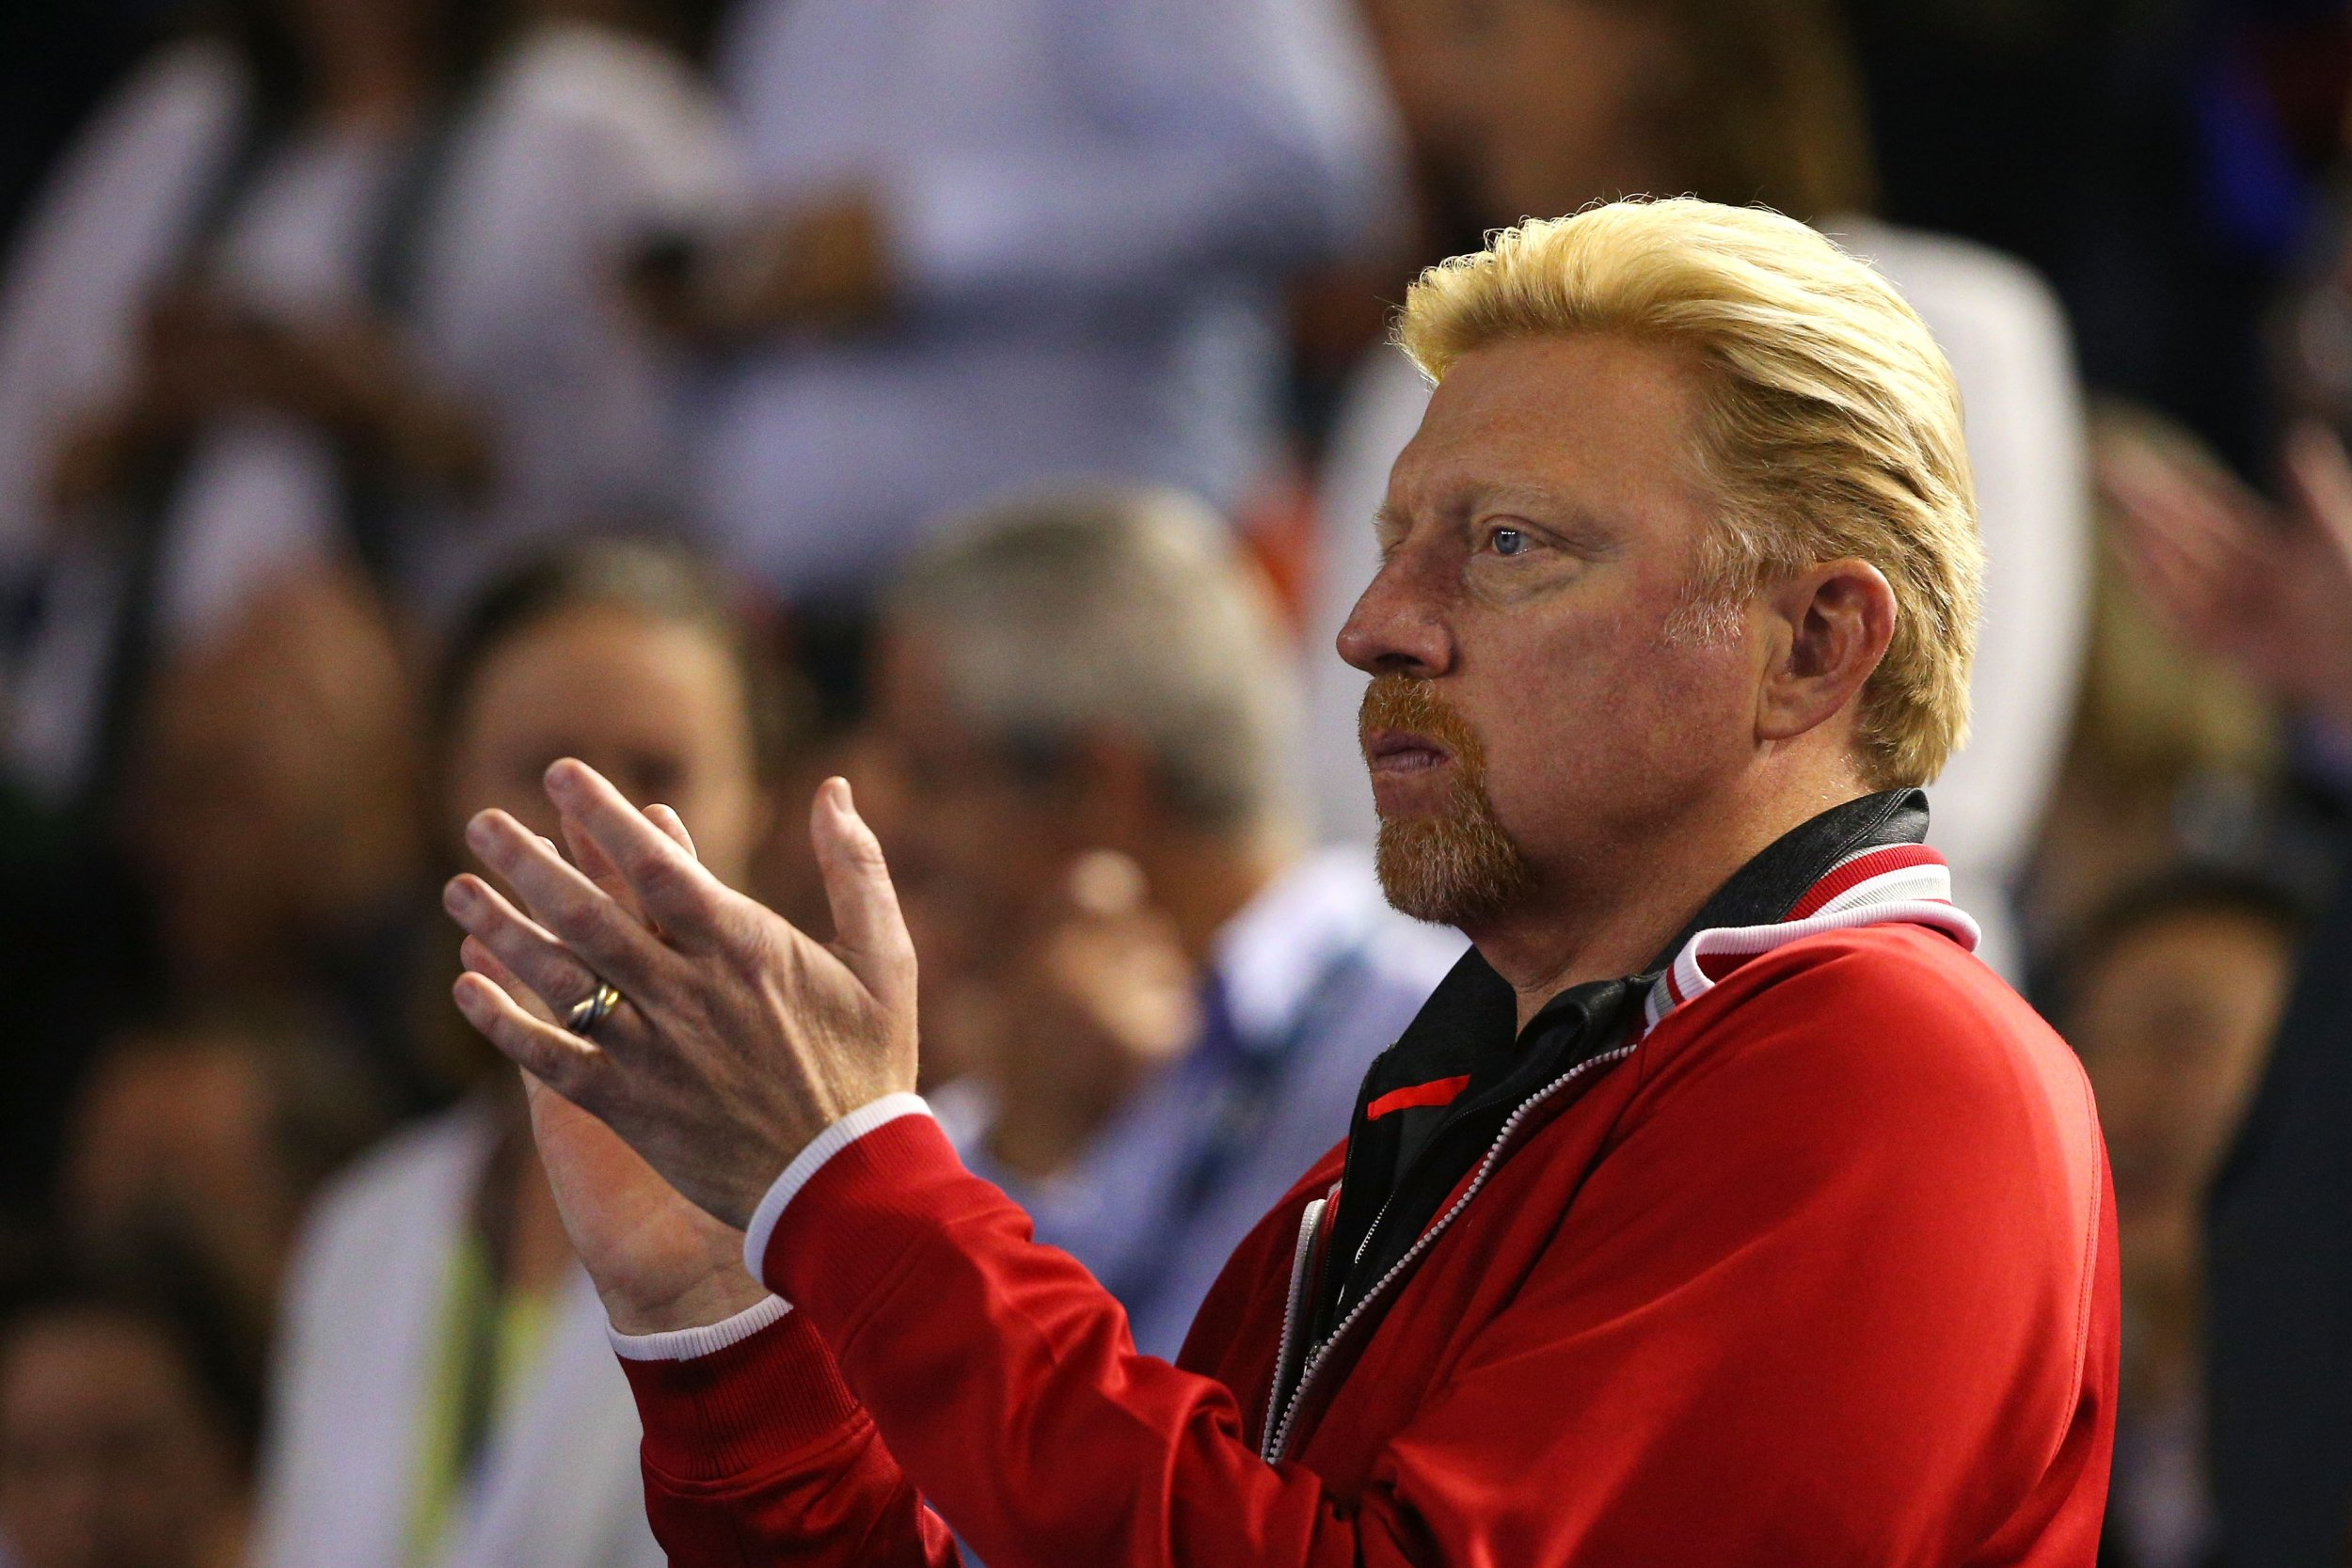 Boris Becker is coach to world number one Novak Djokovic.